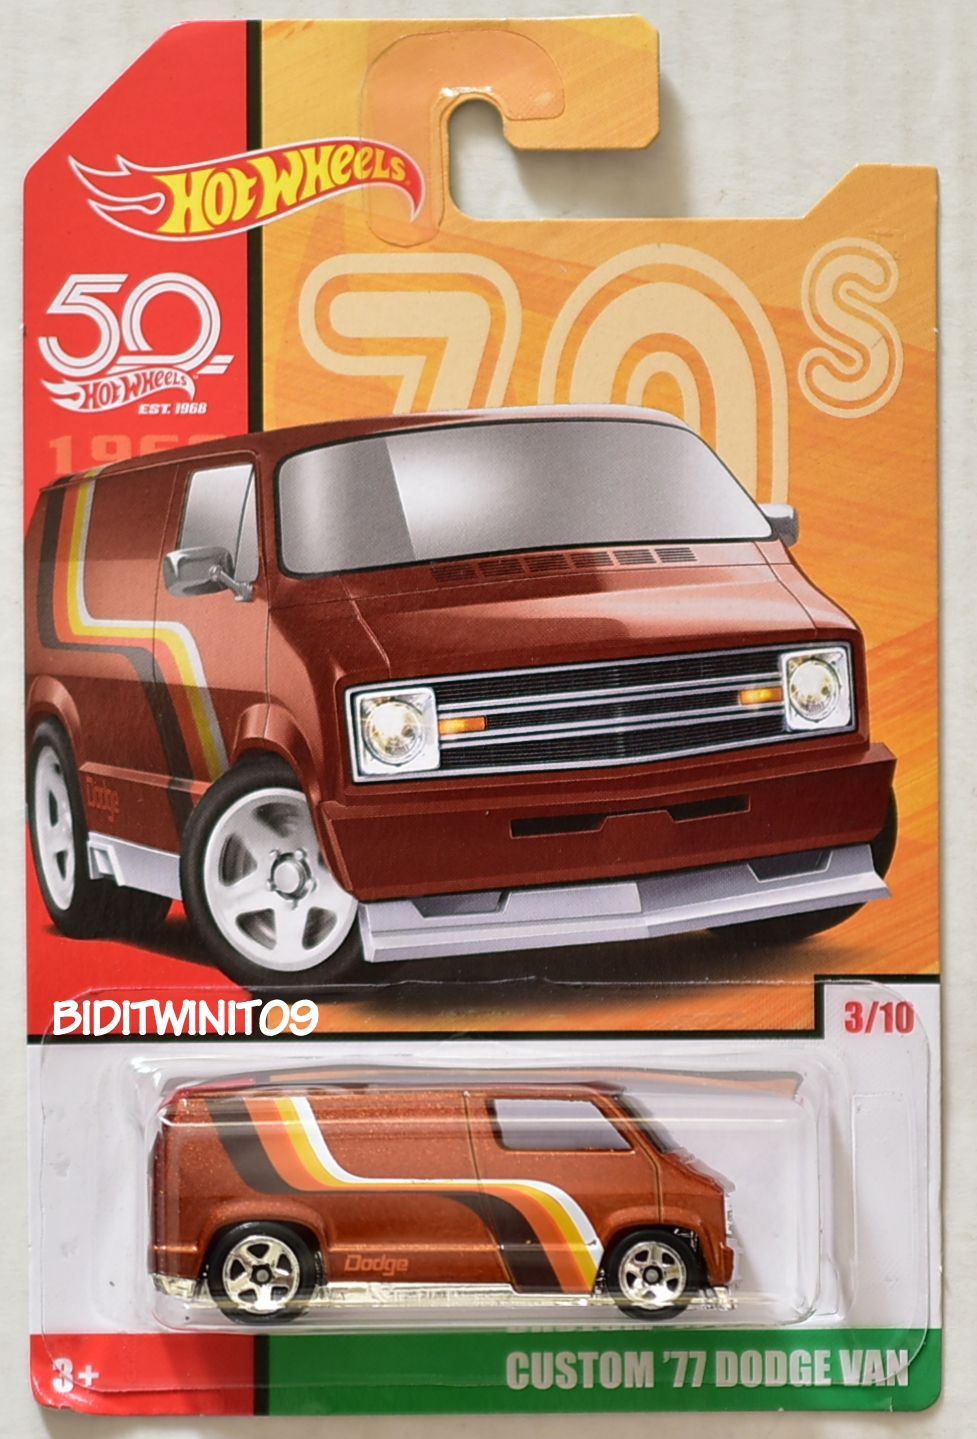 HOT WHEELS 2018 THROWBACK DECADES 50TH ANNIVERSARY CUSTOM '77 DODGE VAN